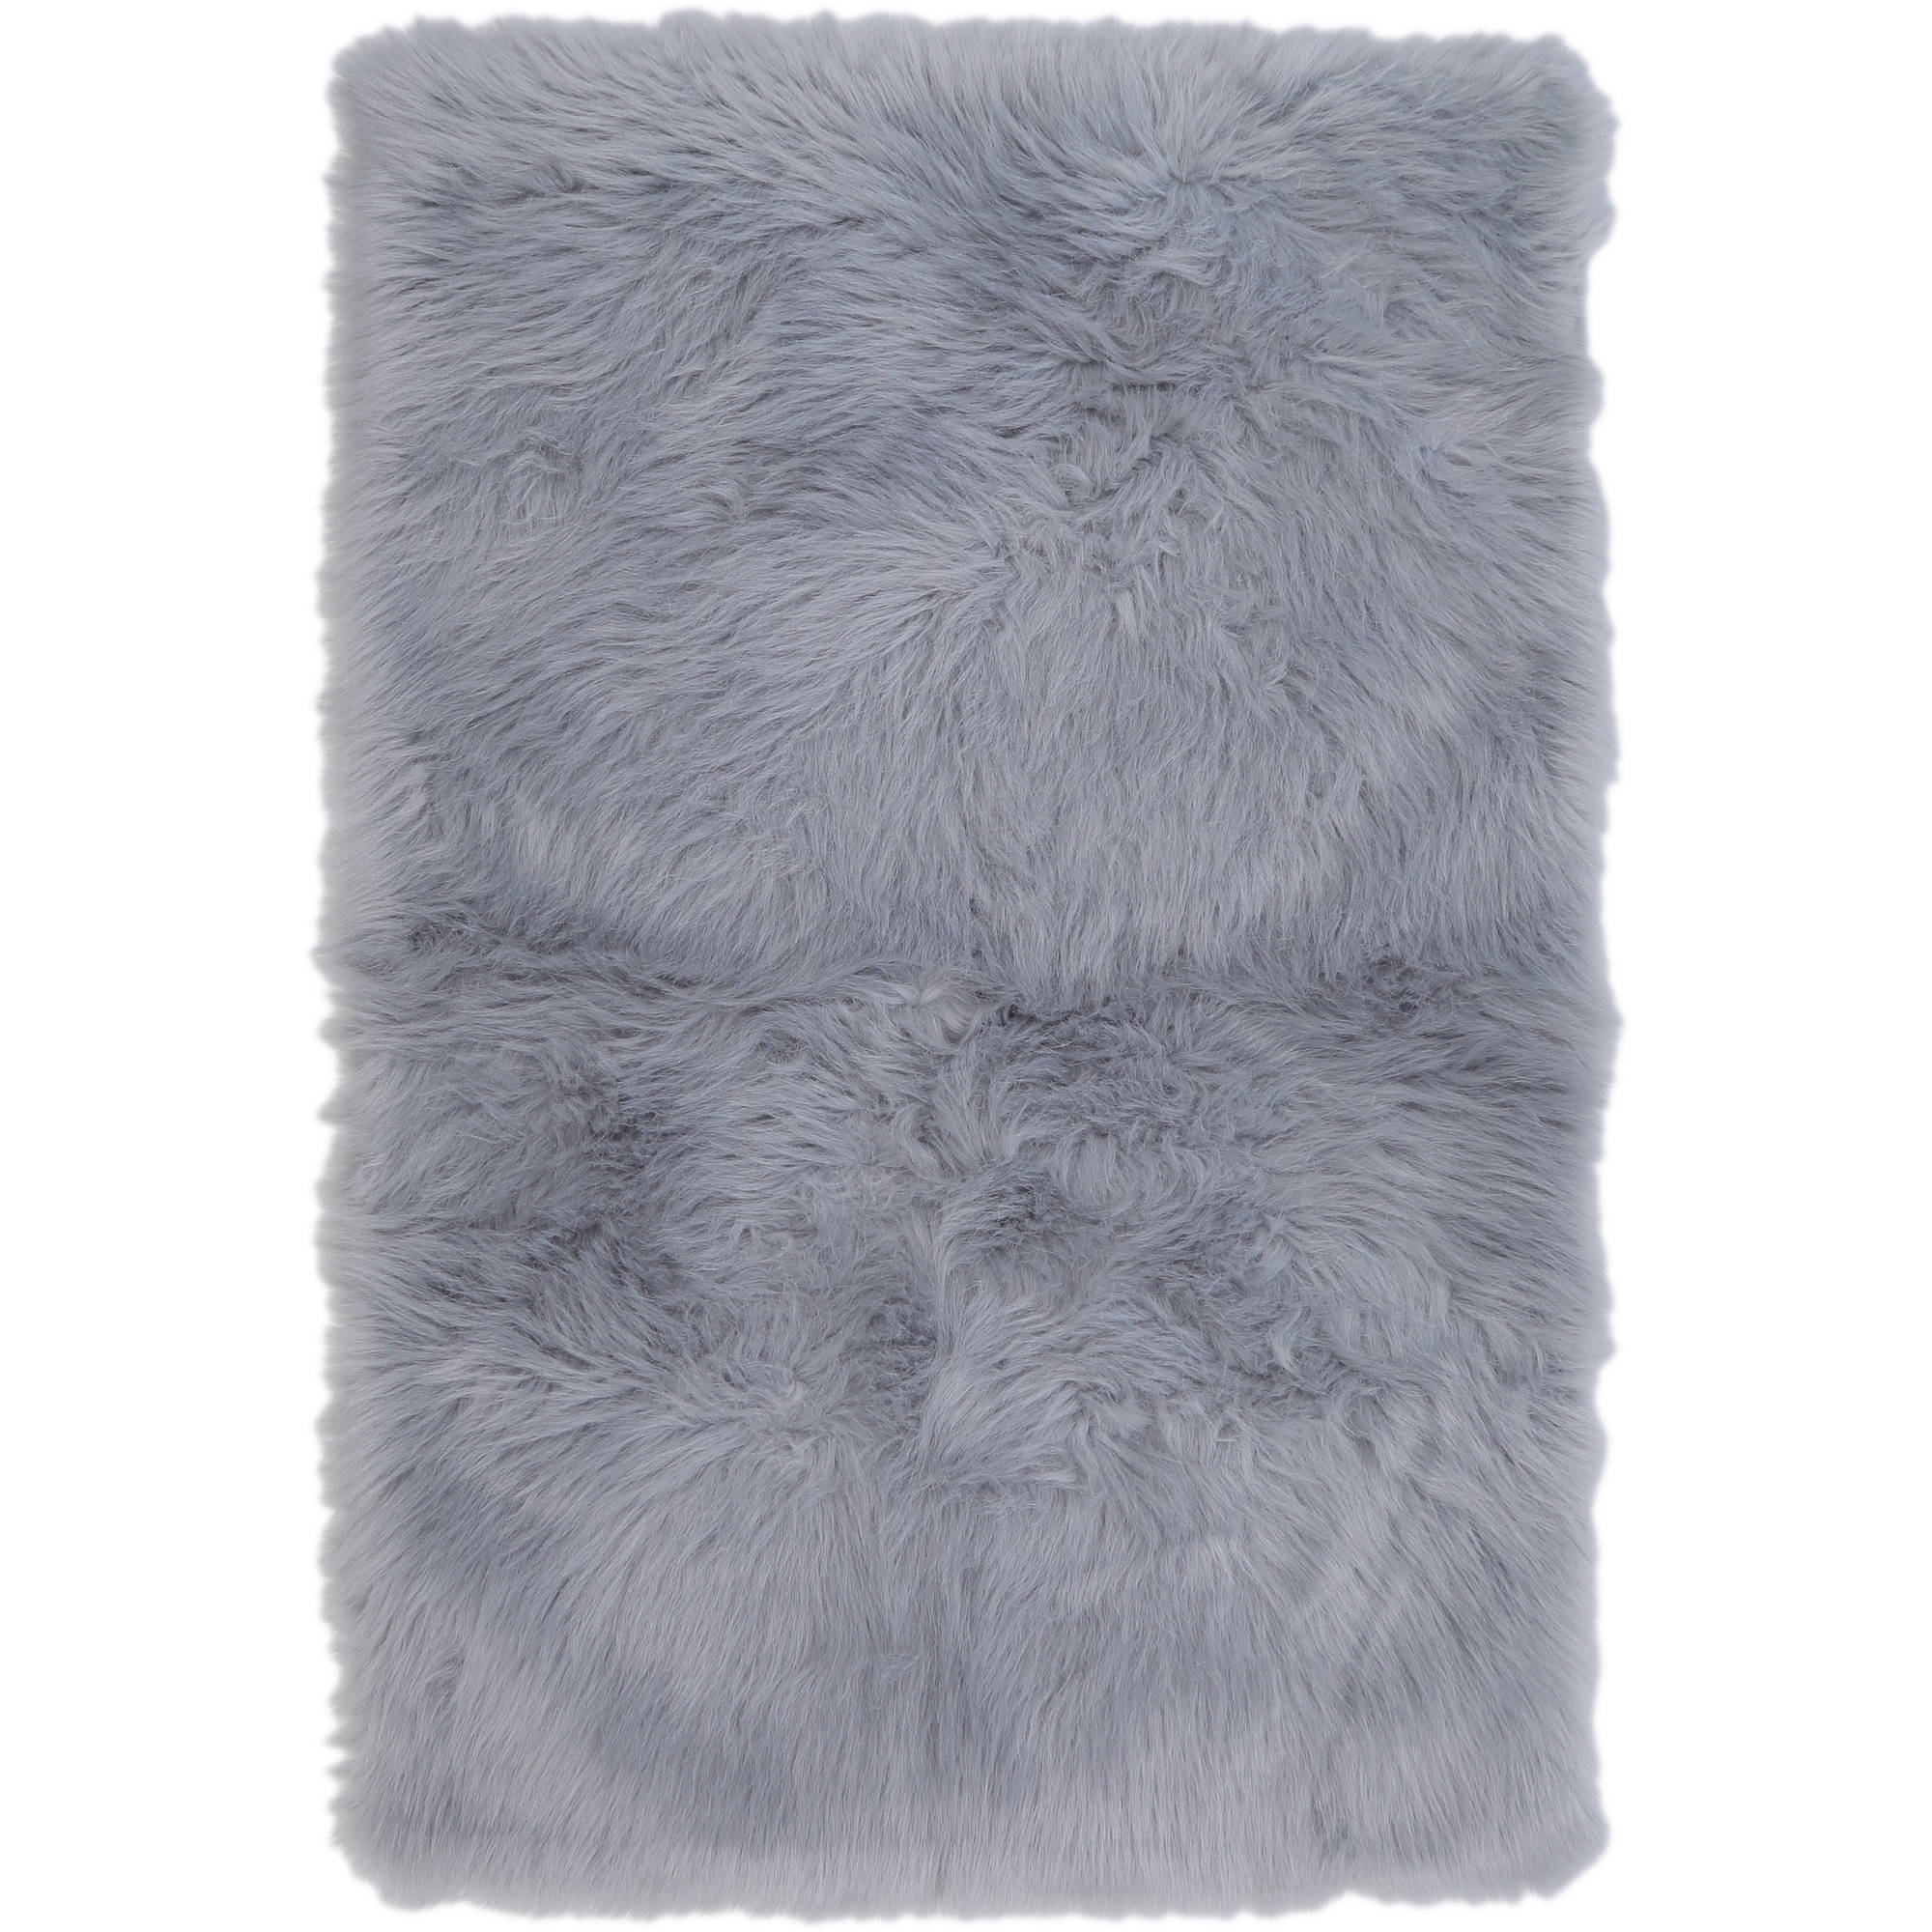 Faux Fur Fabric Walmart -